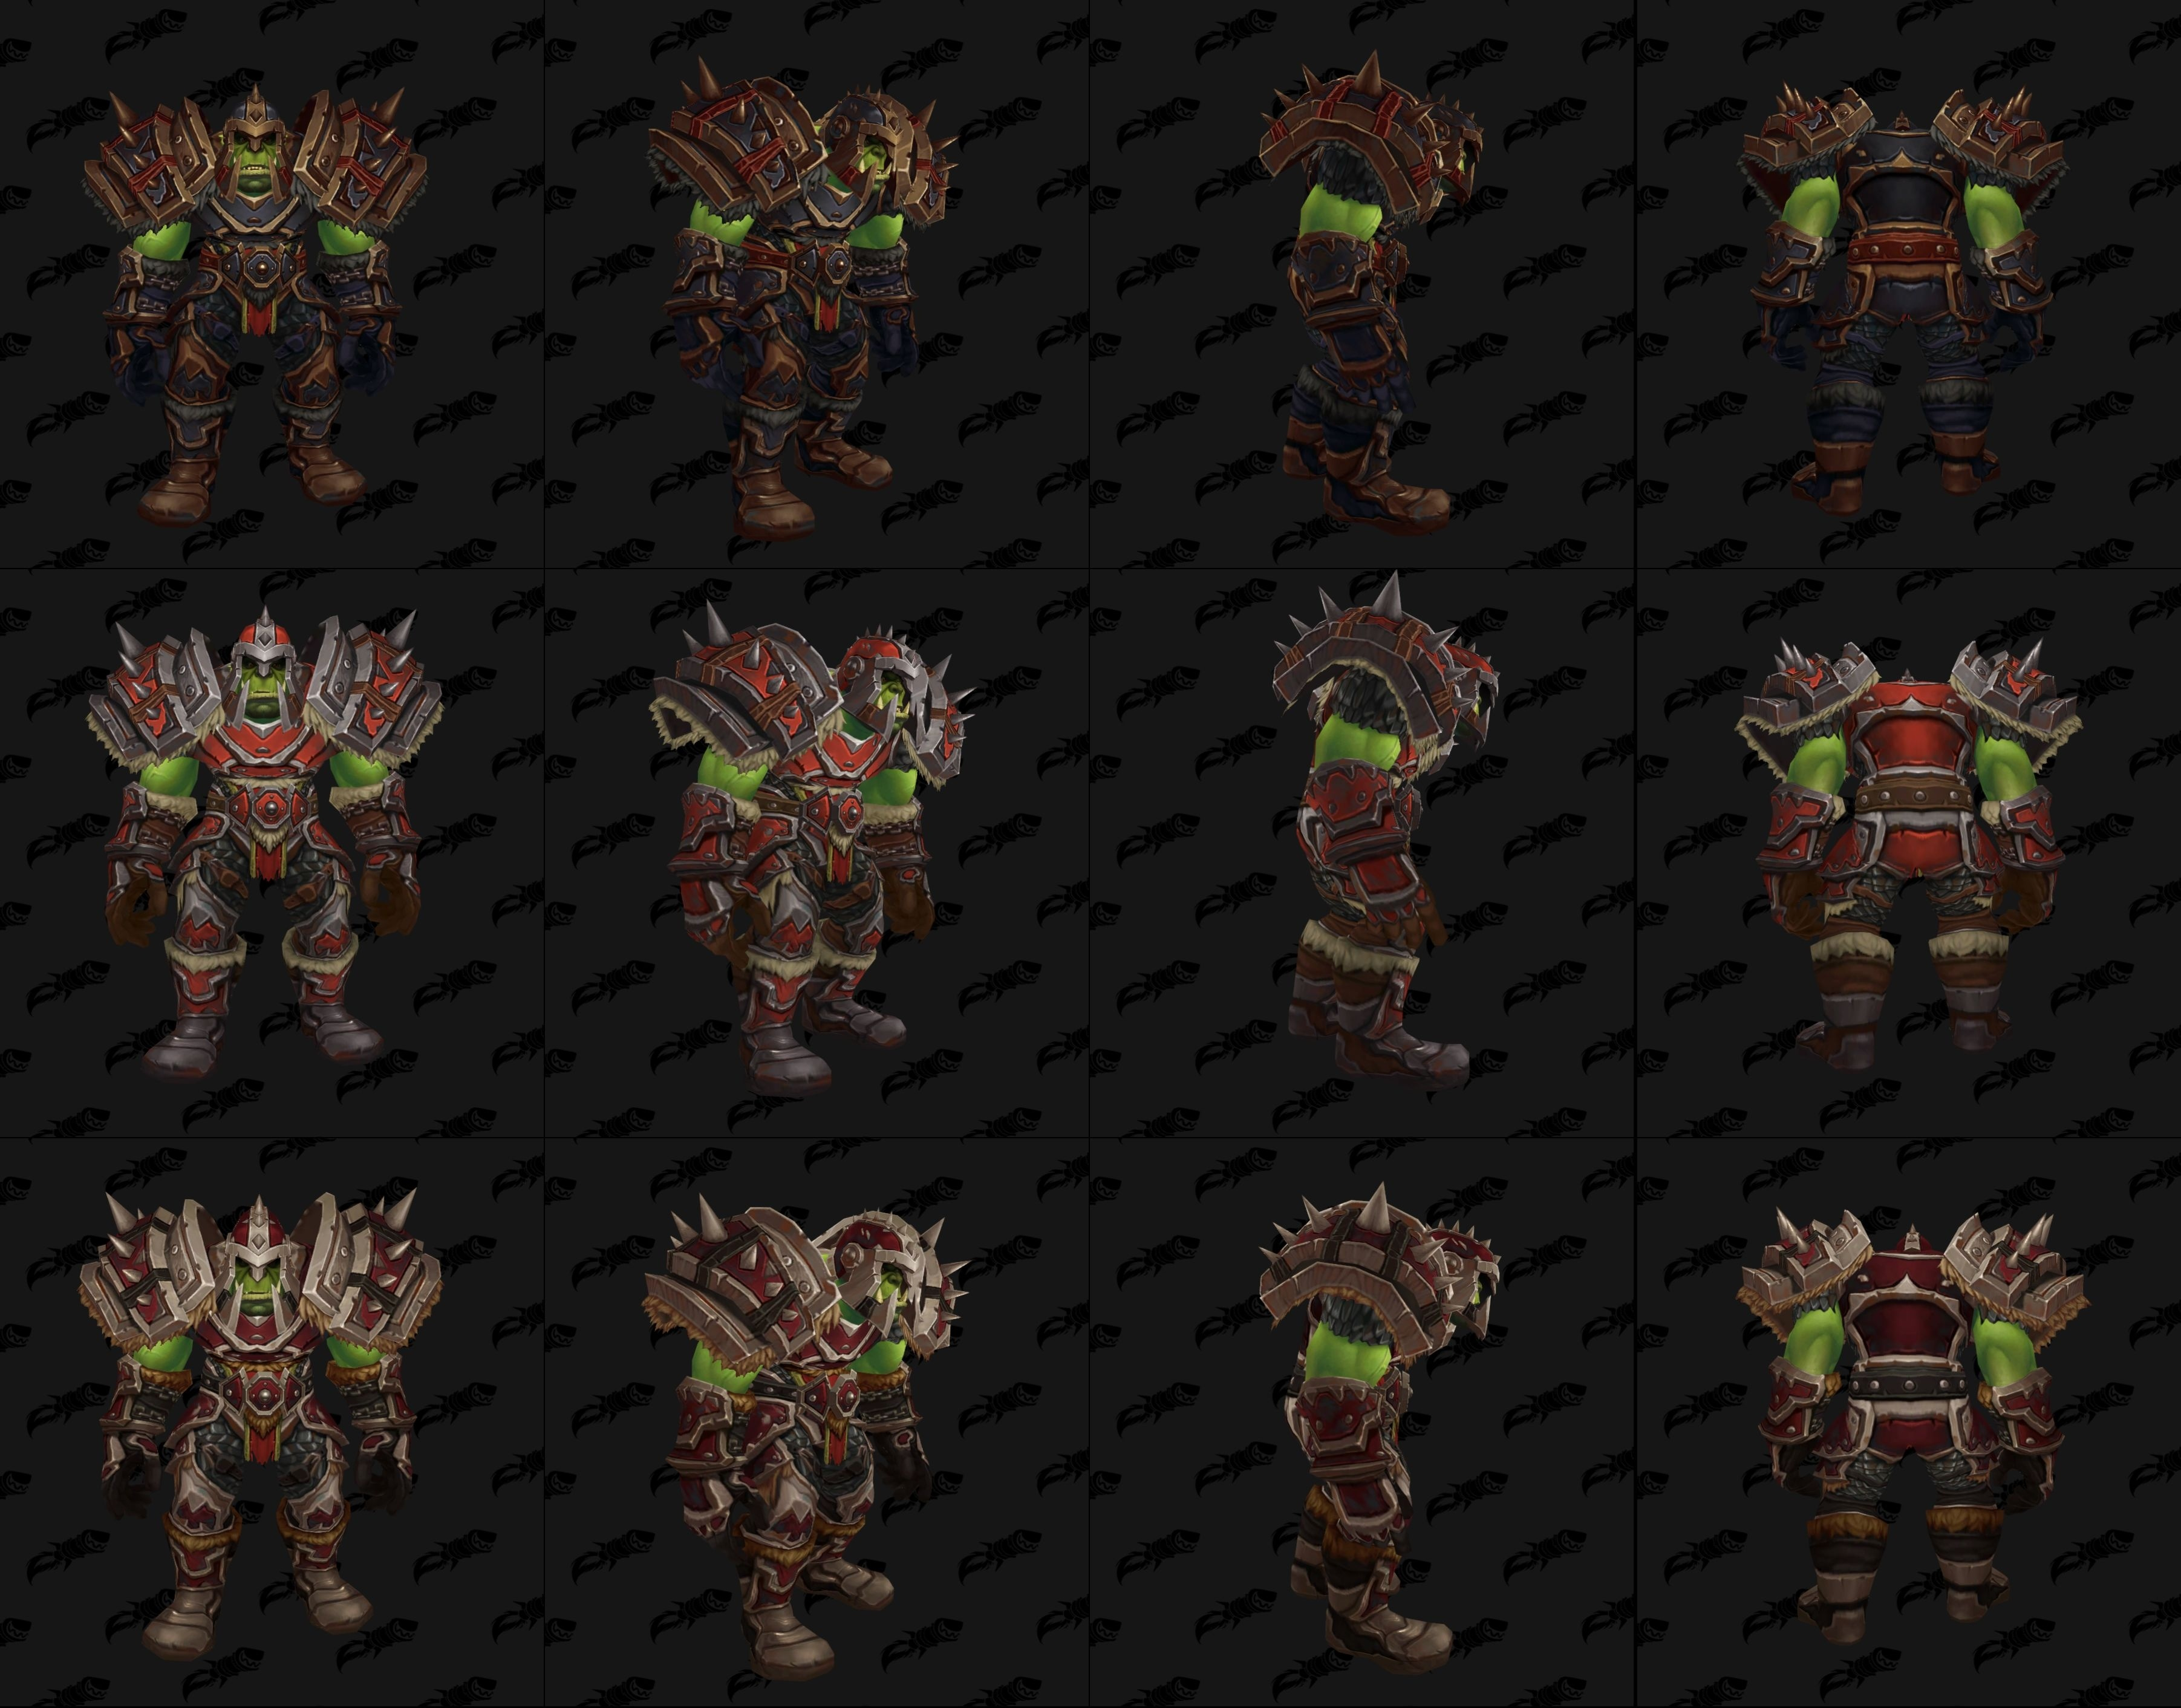 Battle for Azeroth Warfronts - Alliance Plate Armor - Wowhead News